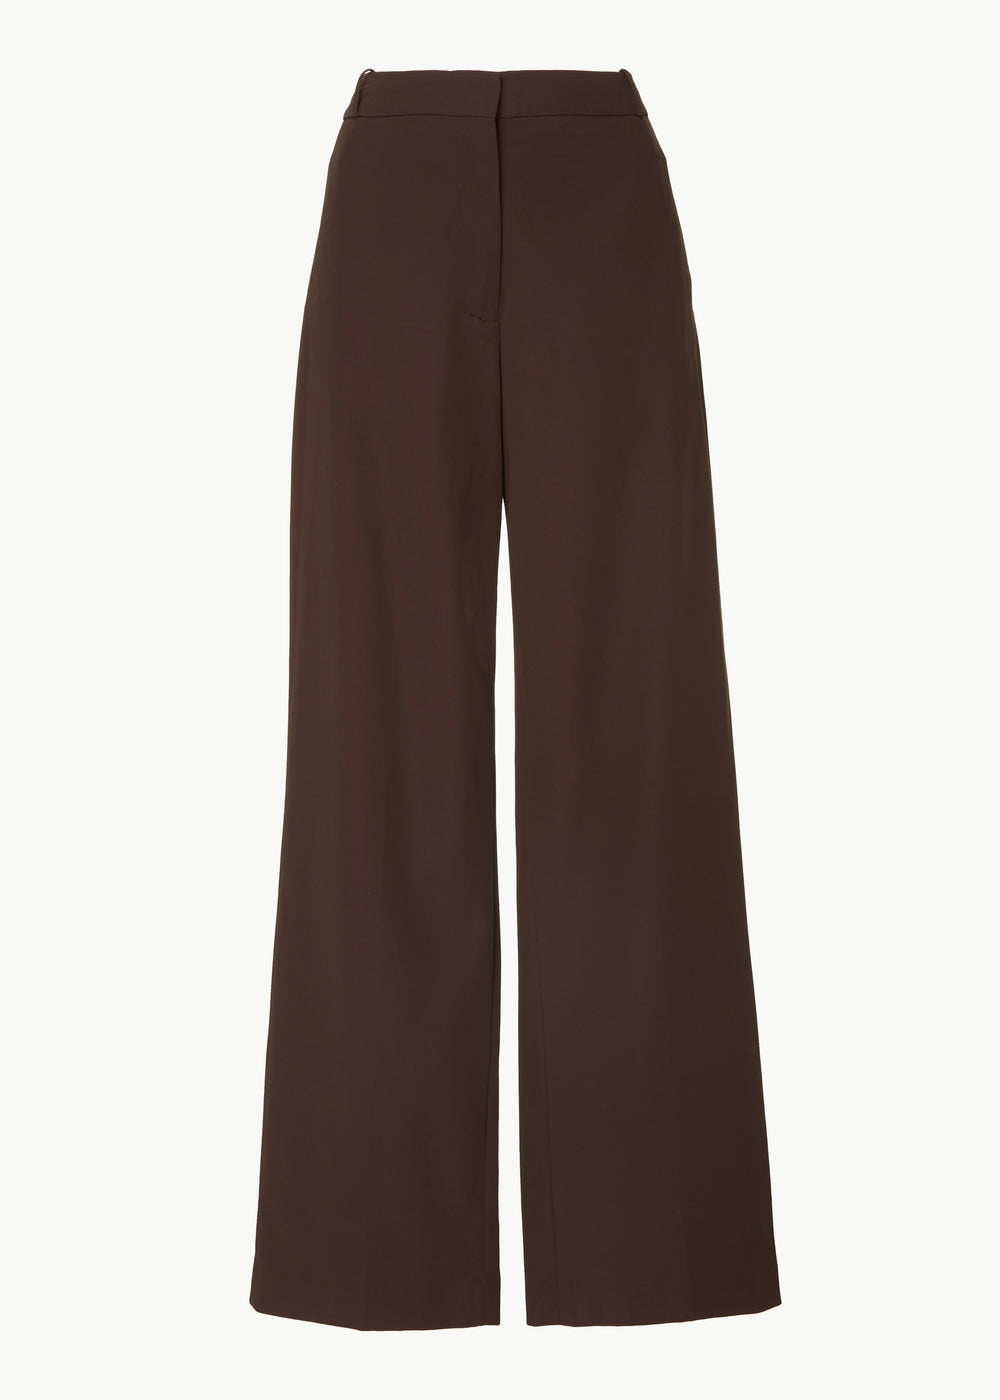 Straight Leg Trouser in Cotton Blend Twill - Espresso - CO